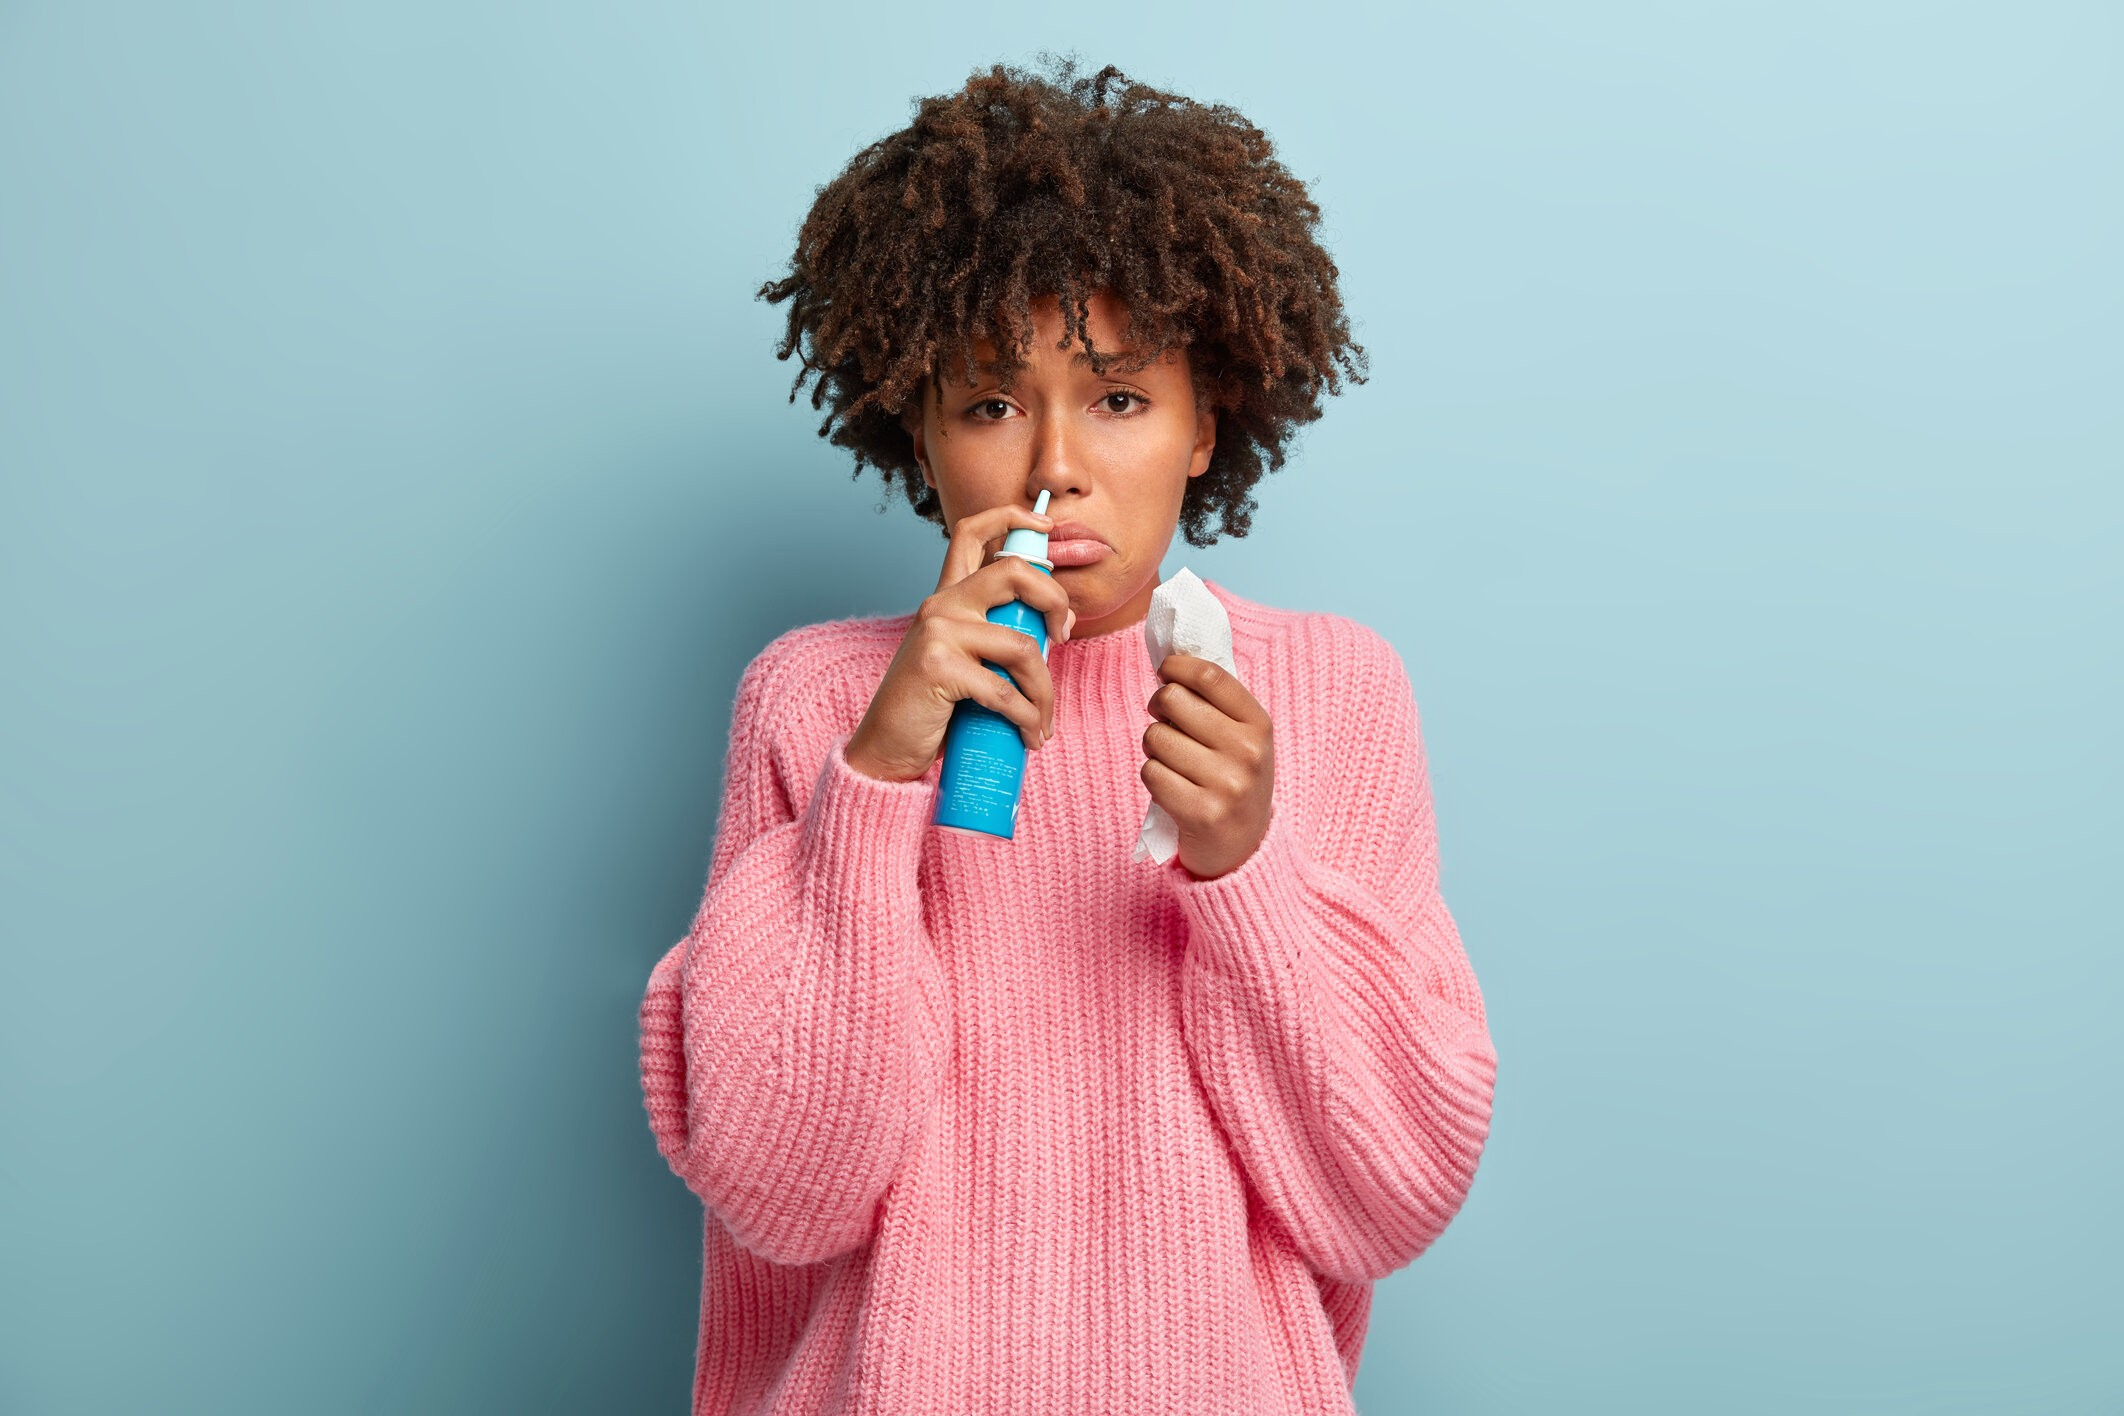 rsz portrait displeased afro american woman sniffs nasal aerosol feels sick has running nose uses medication blocked nose holds tissue has sad facial expression wears pink jumper